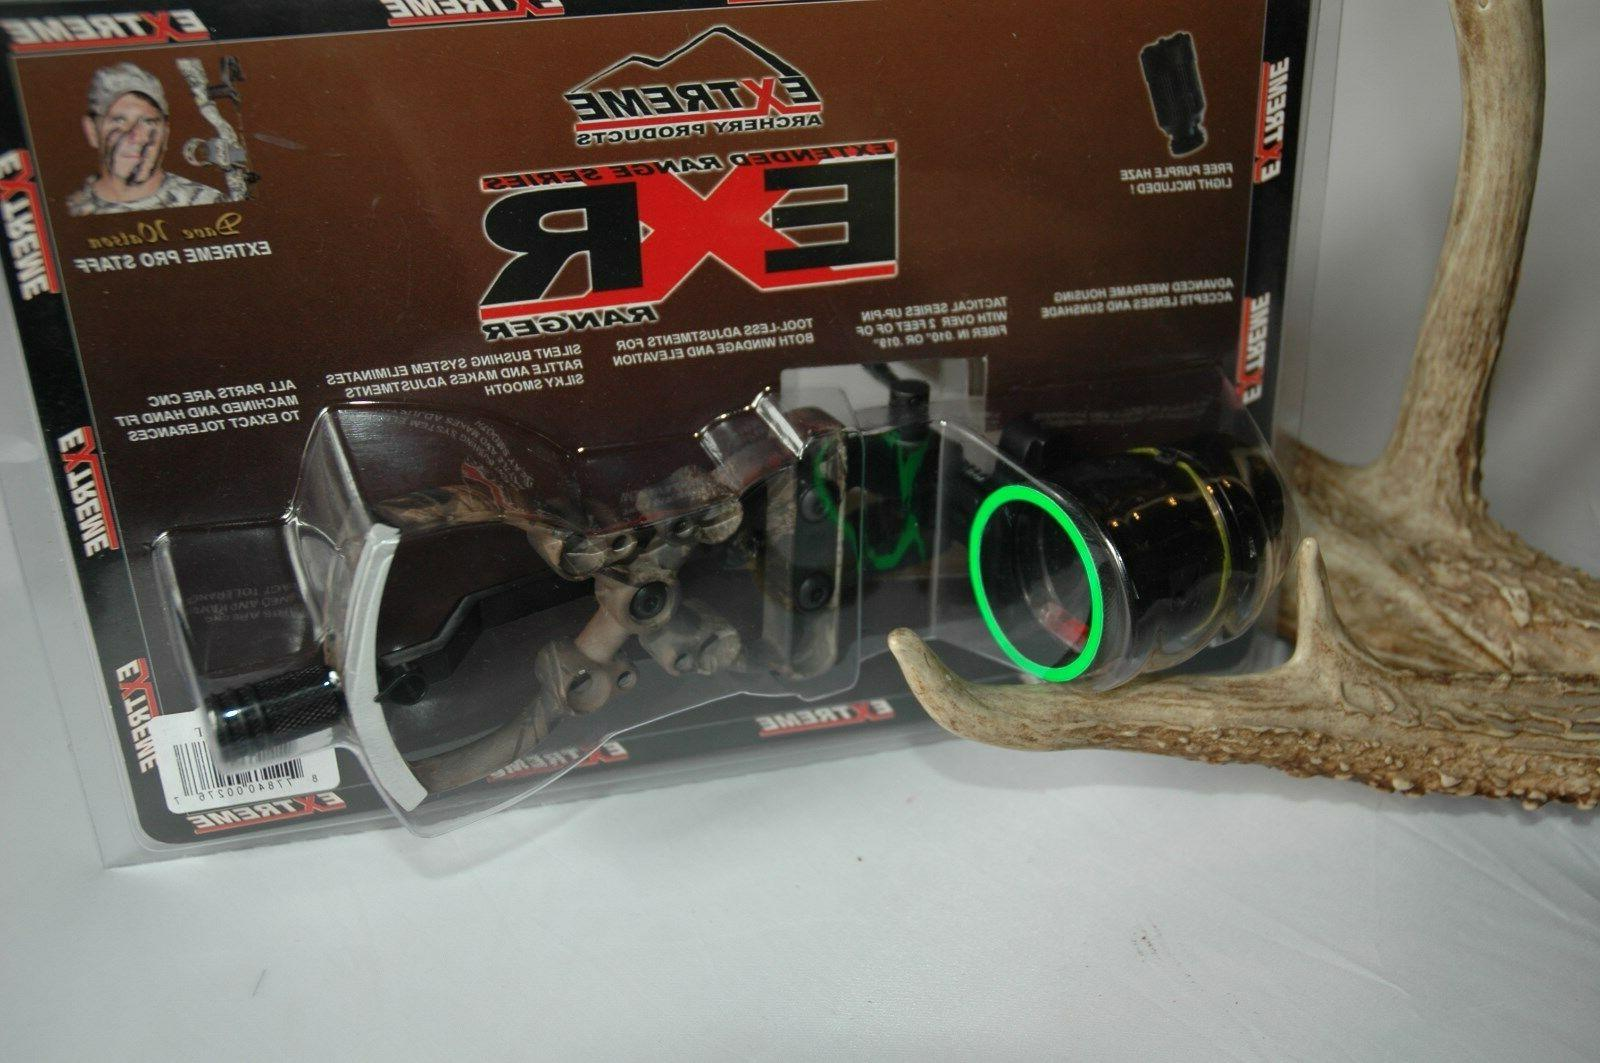 Extreme Archery Exr 1000 .015 1 Pin Sight With Light Lost Ca